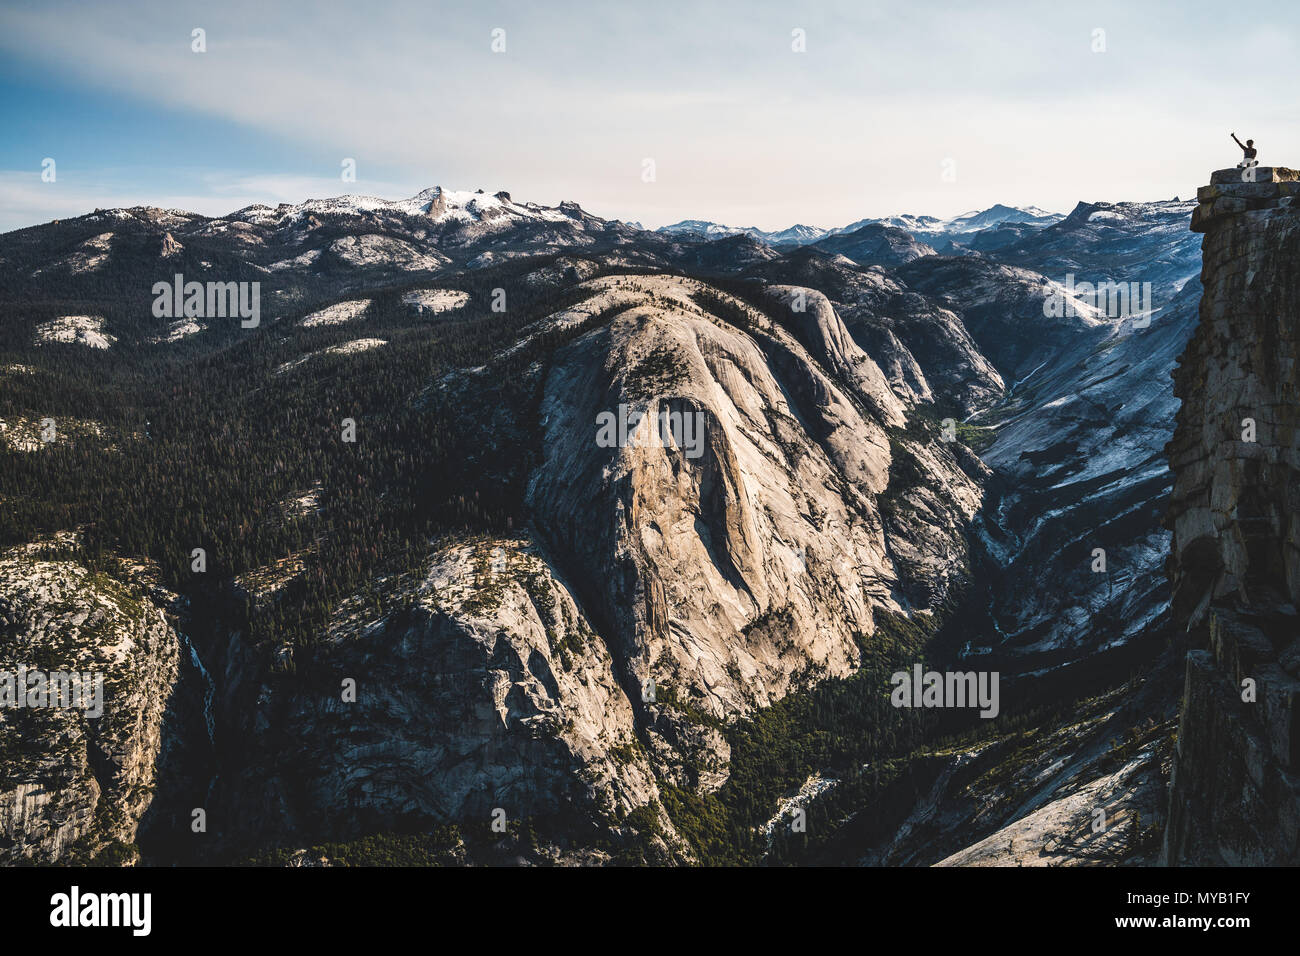 A tiny, lonely hiker on top of Half Dome in Yosemite National Park. - Stock Image